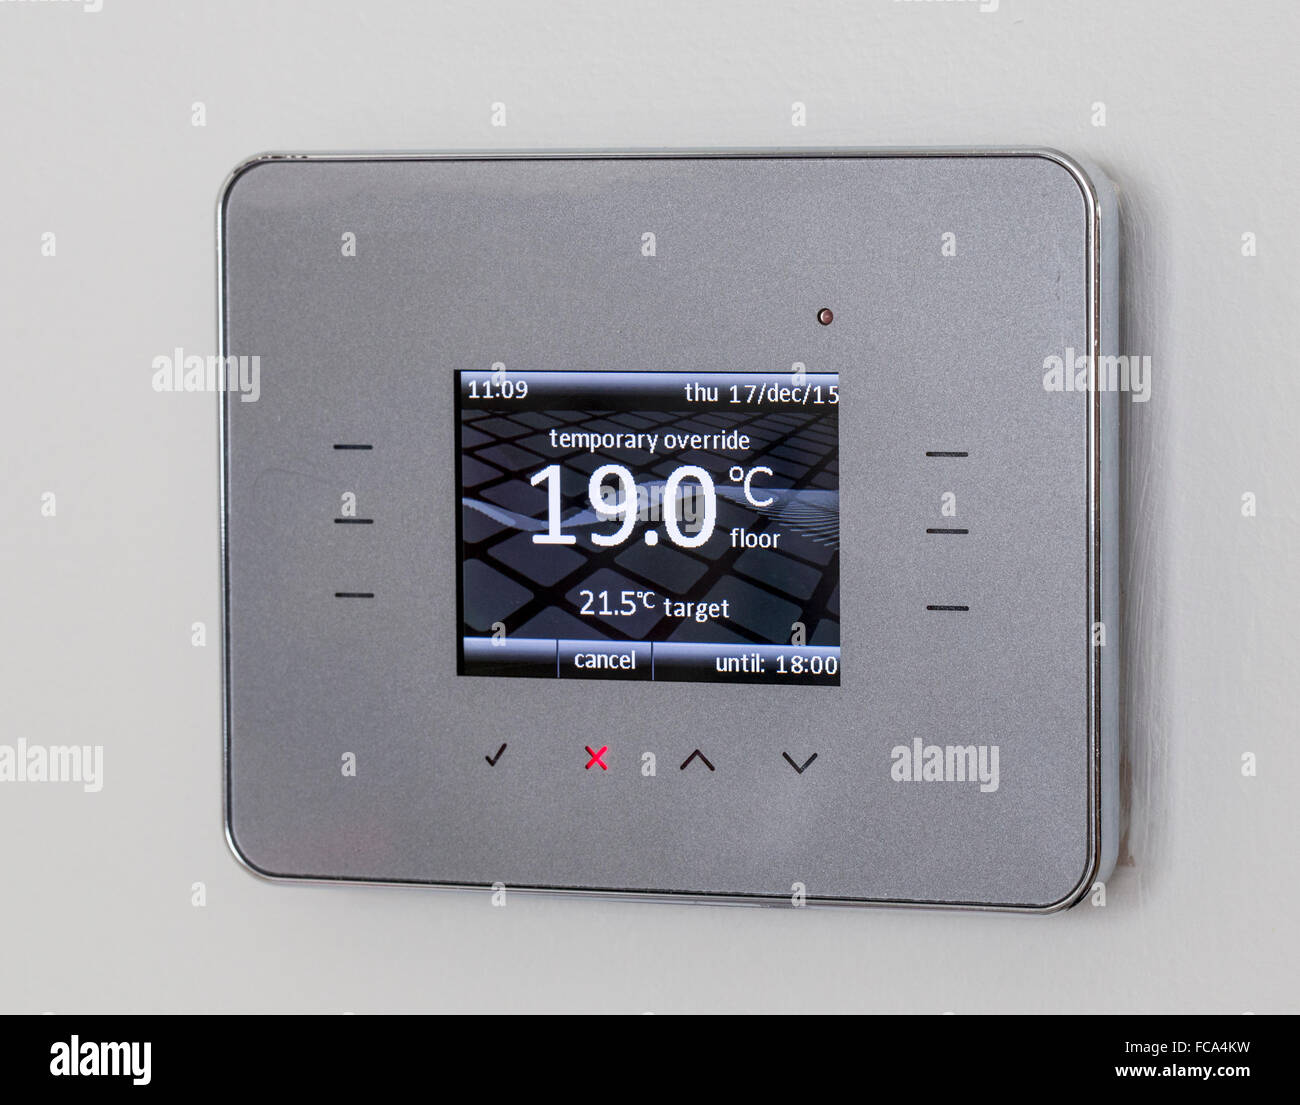 Temperature control unit for under floor heating system. - Stock Image